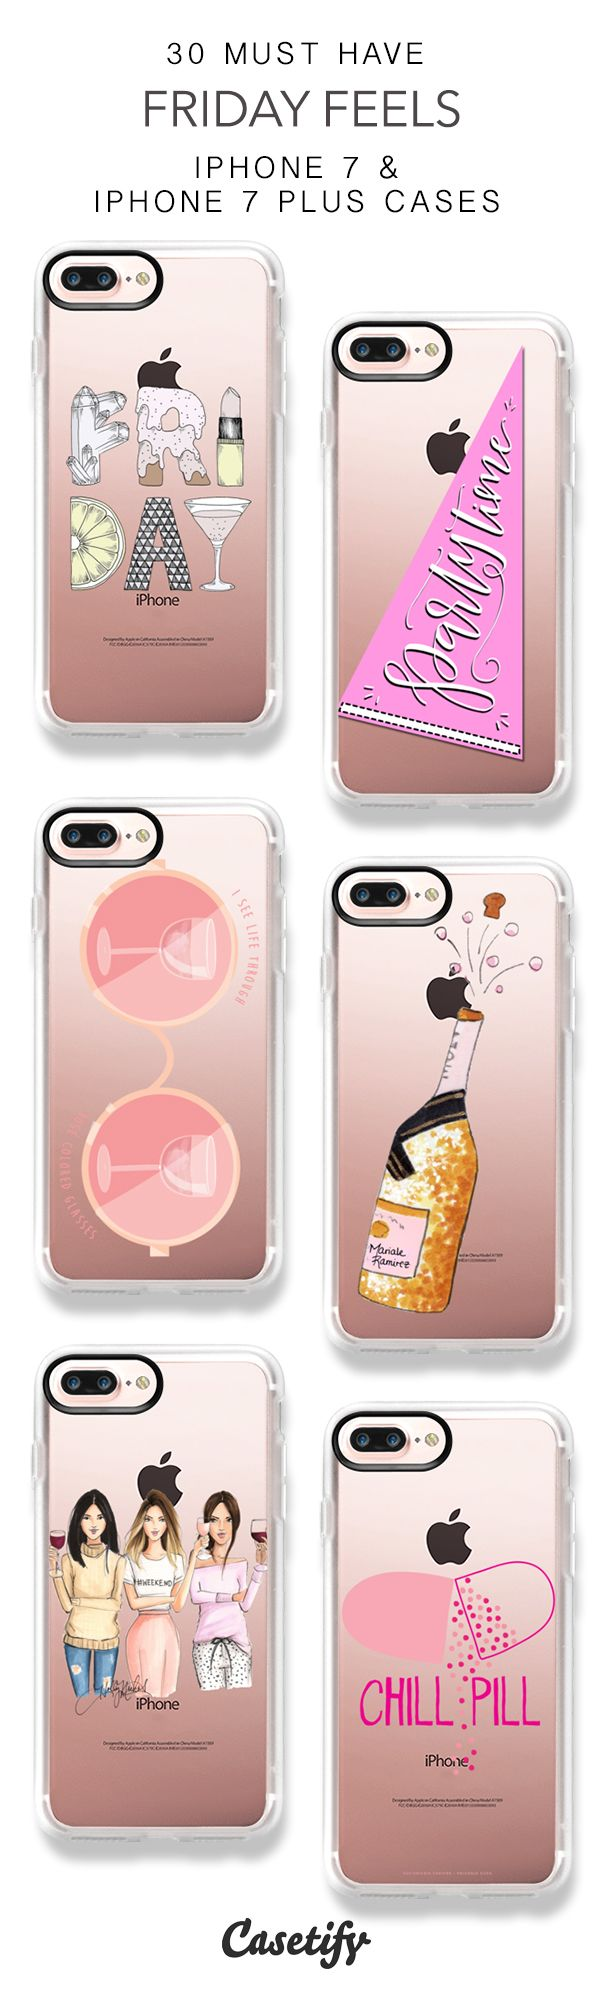 30 Must Have Friday Feels Protective iPhone 7 Cases and iPhone 7 Plus Cases. More Weekend Phone case here > https://www.casetify.com/collections/top_100_designs#/?vc=FmhF5jP96c